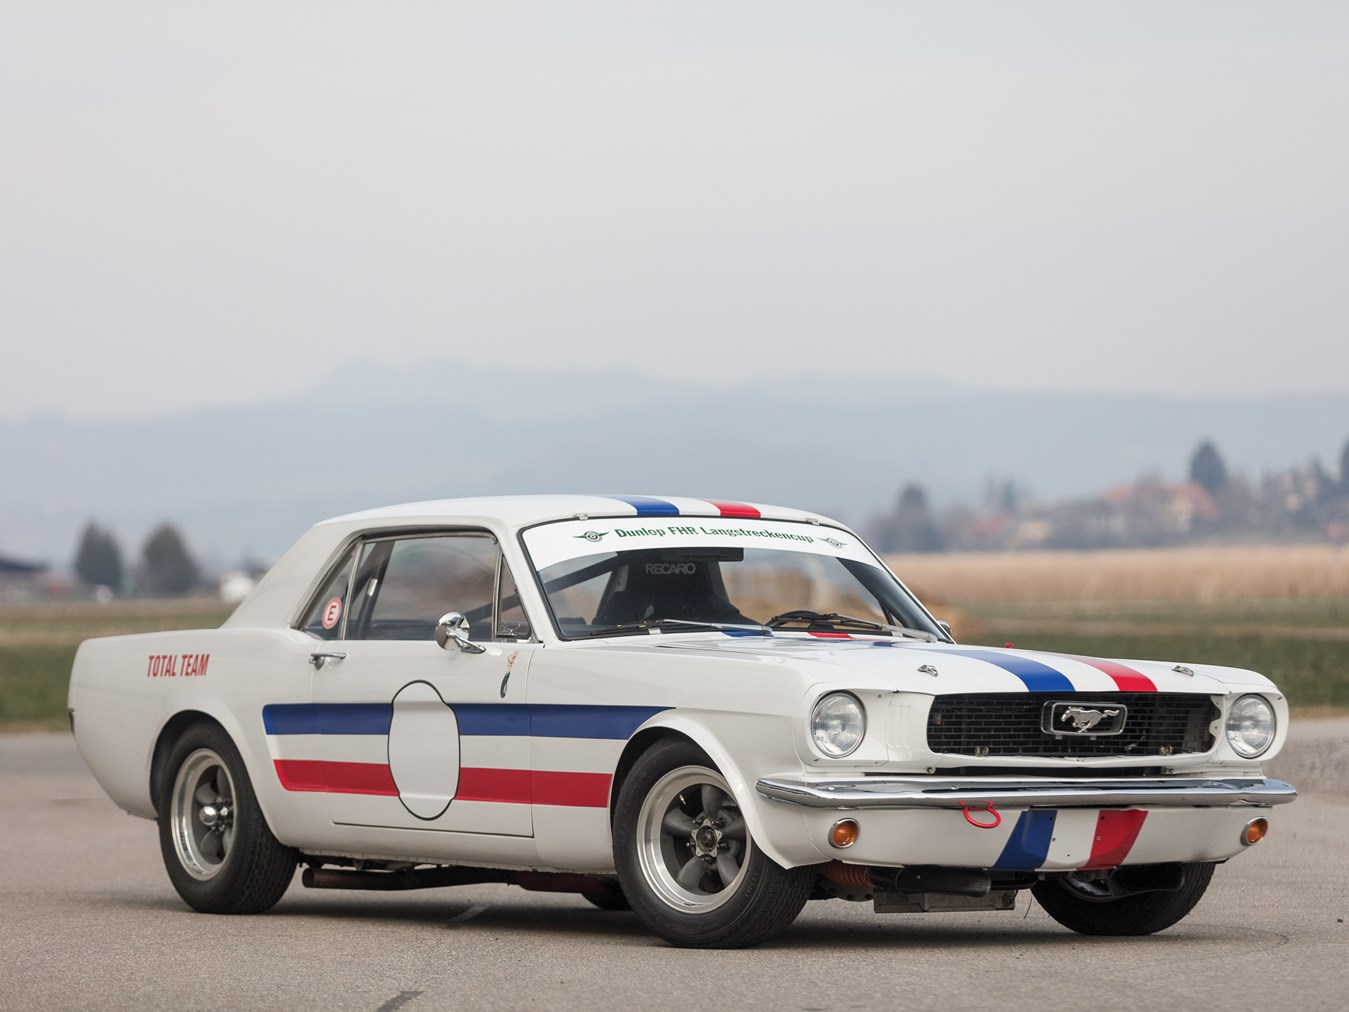 Celebrate National Mustang Day with this delicious 1966 Ford 289 FIA race car thumbnail